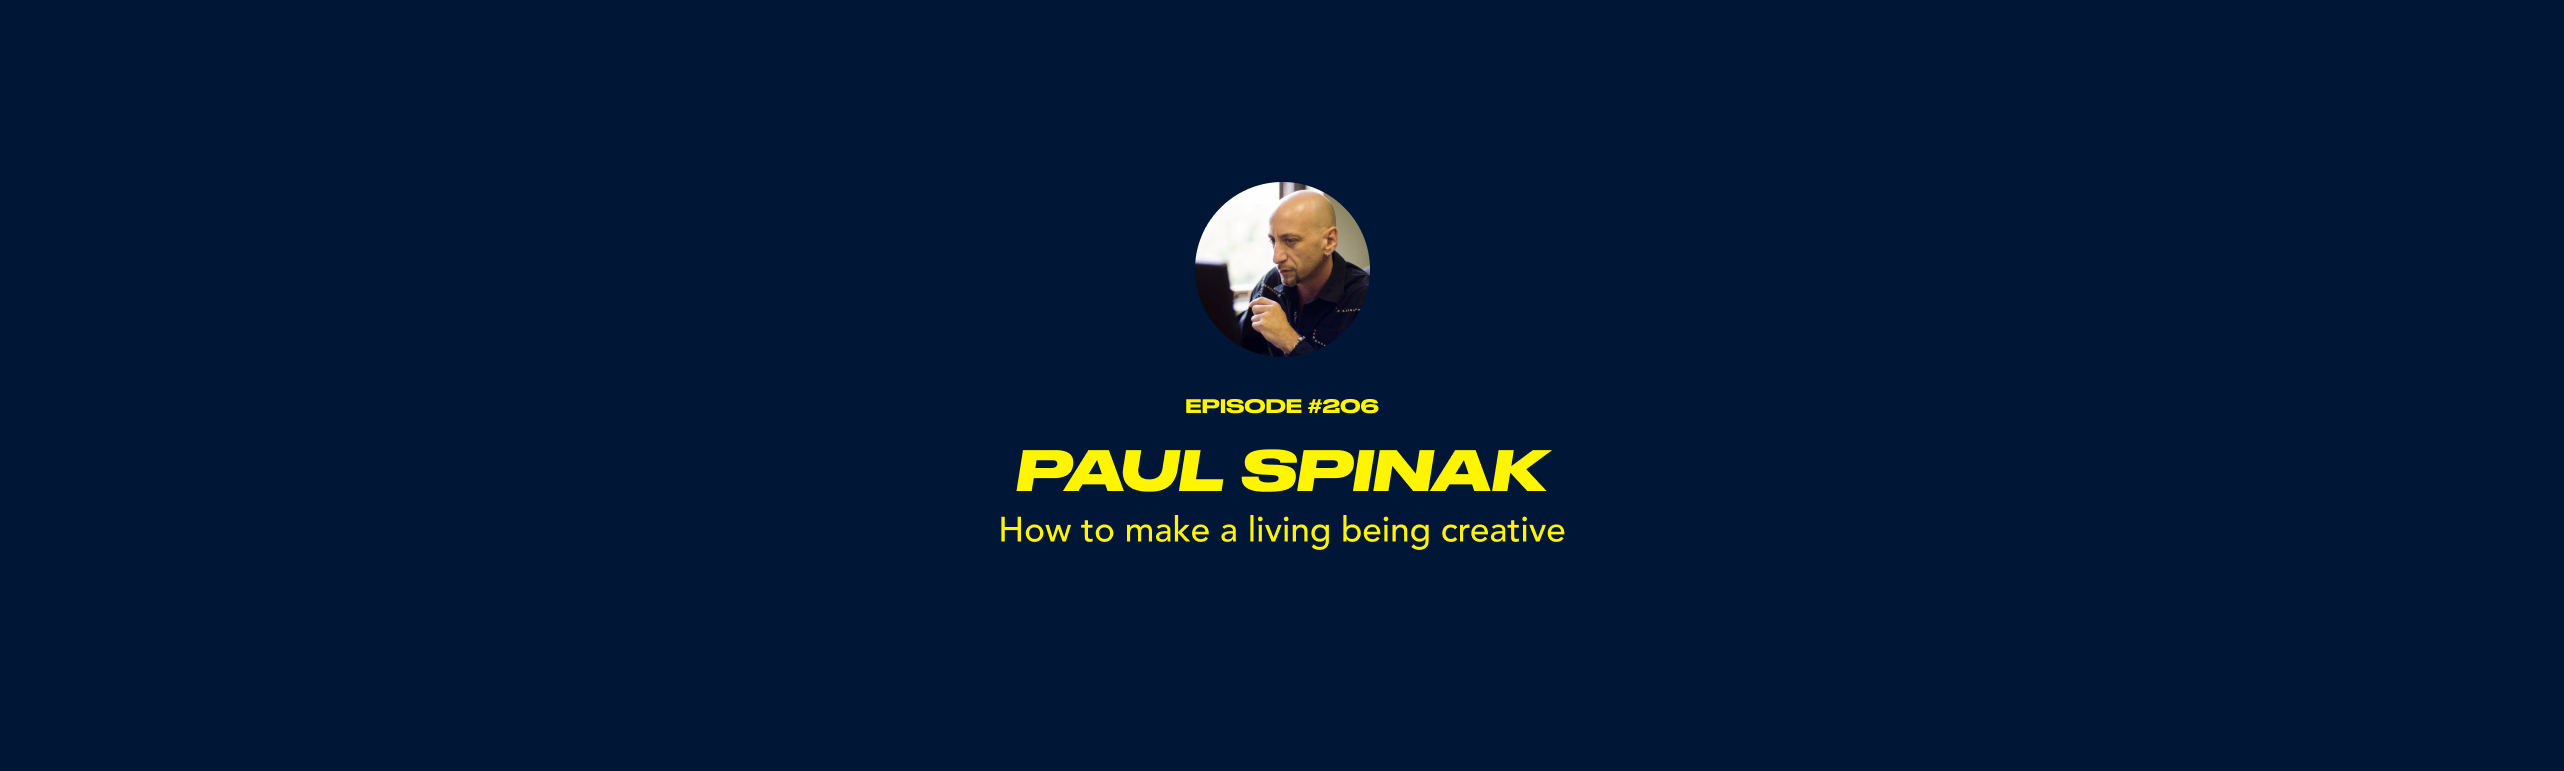 Paul Spinak - How to make a living being creative